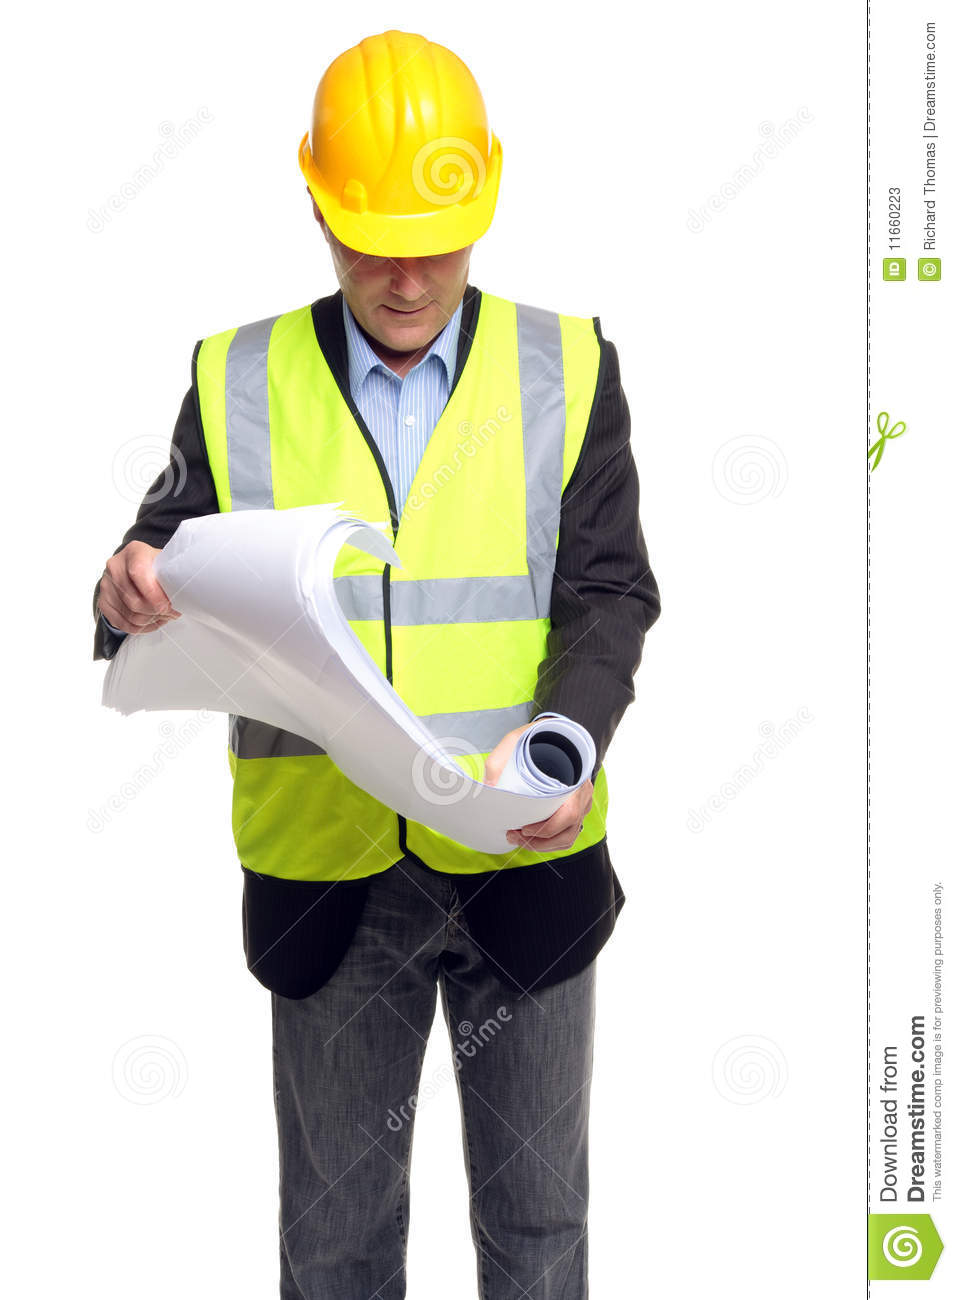 Building Contractor In Safety Gear With Plans Stock Image